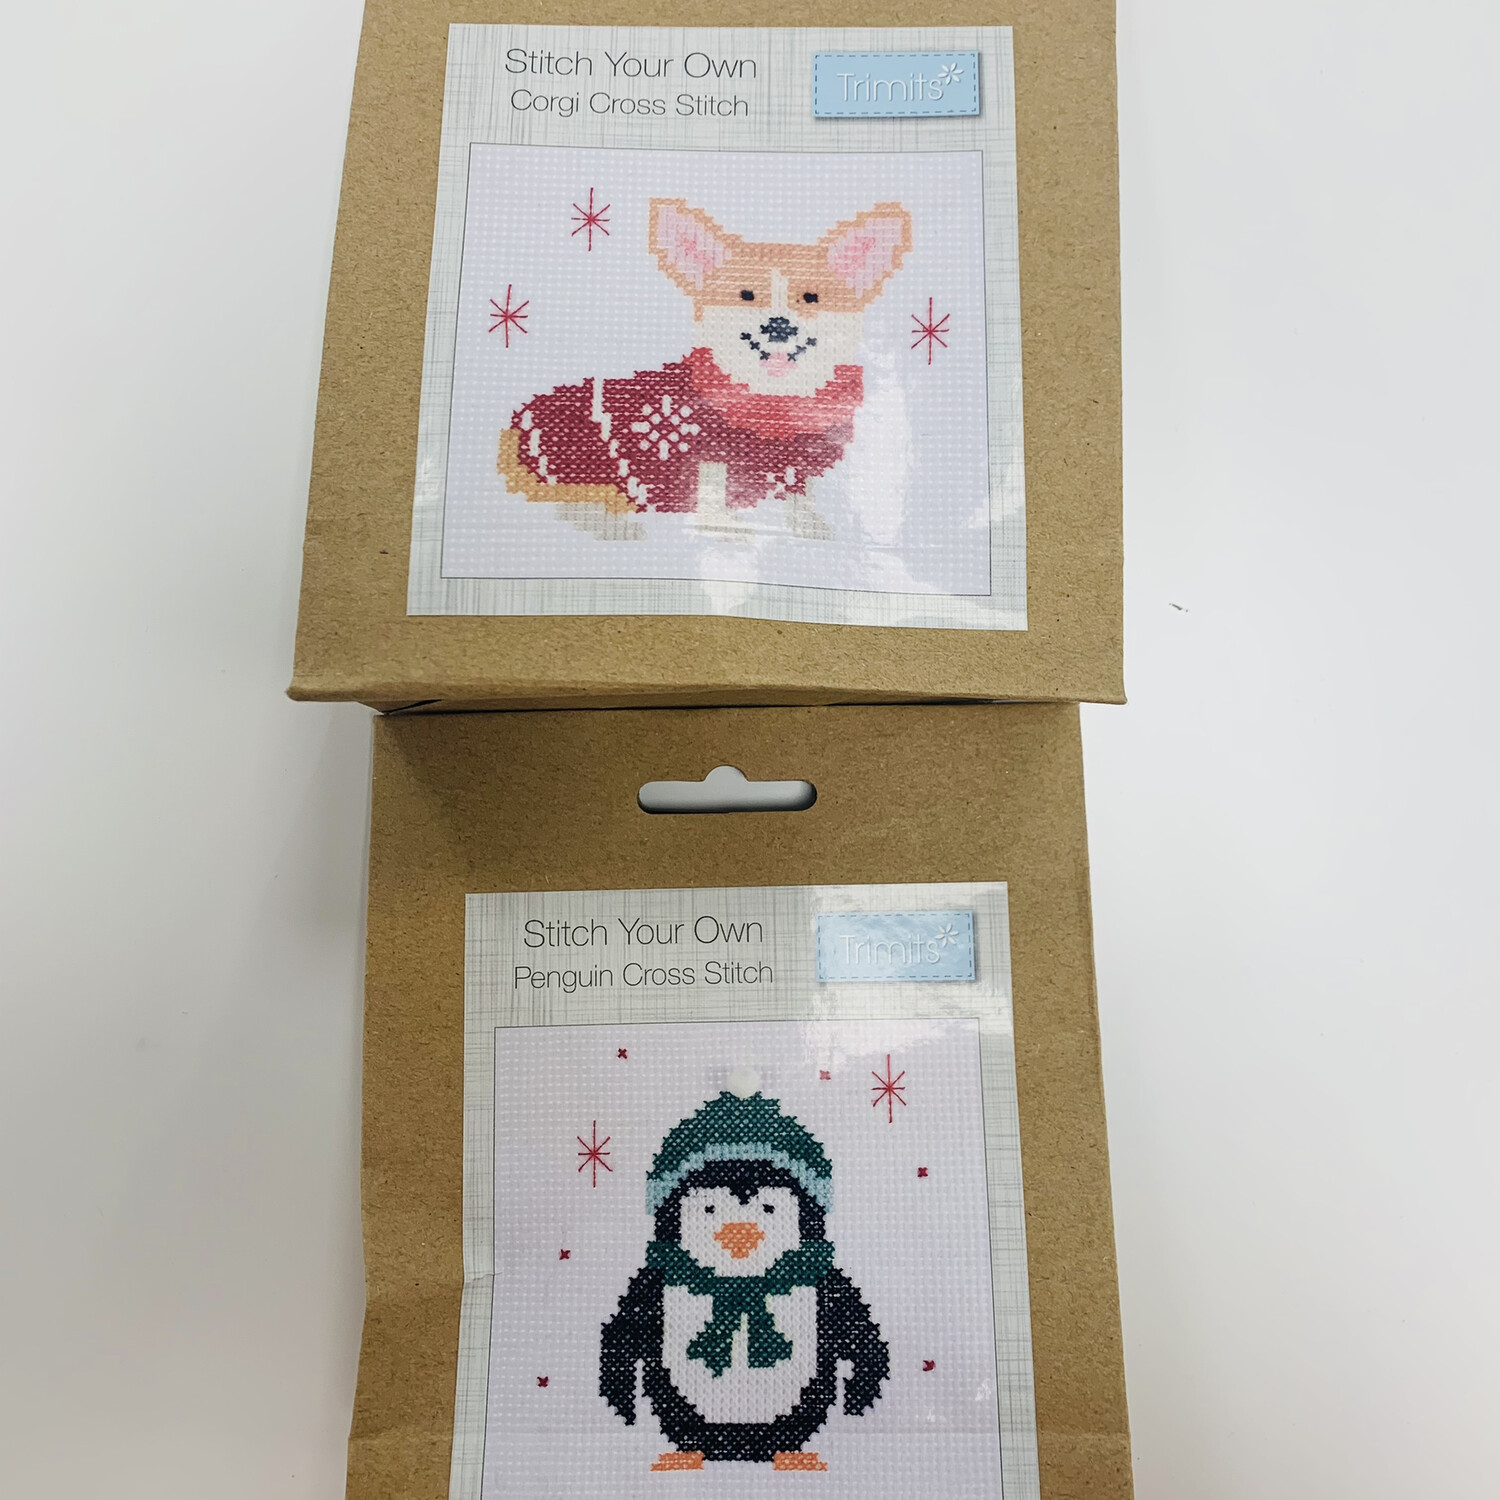 Pack of 2 Trimits Cross Stitch, Stitch Your Own Christmas Decorations - Corgi and Penguin